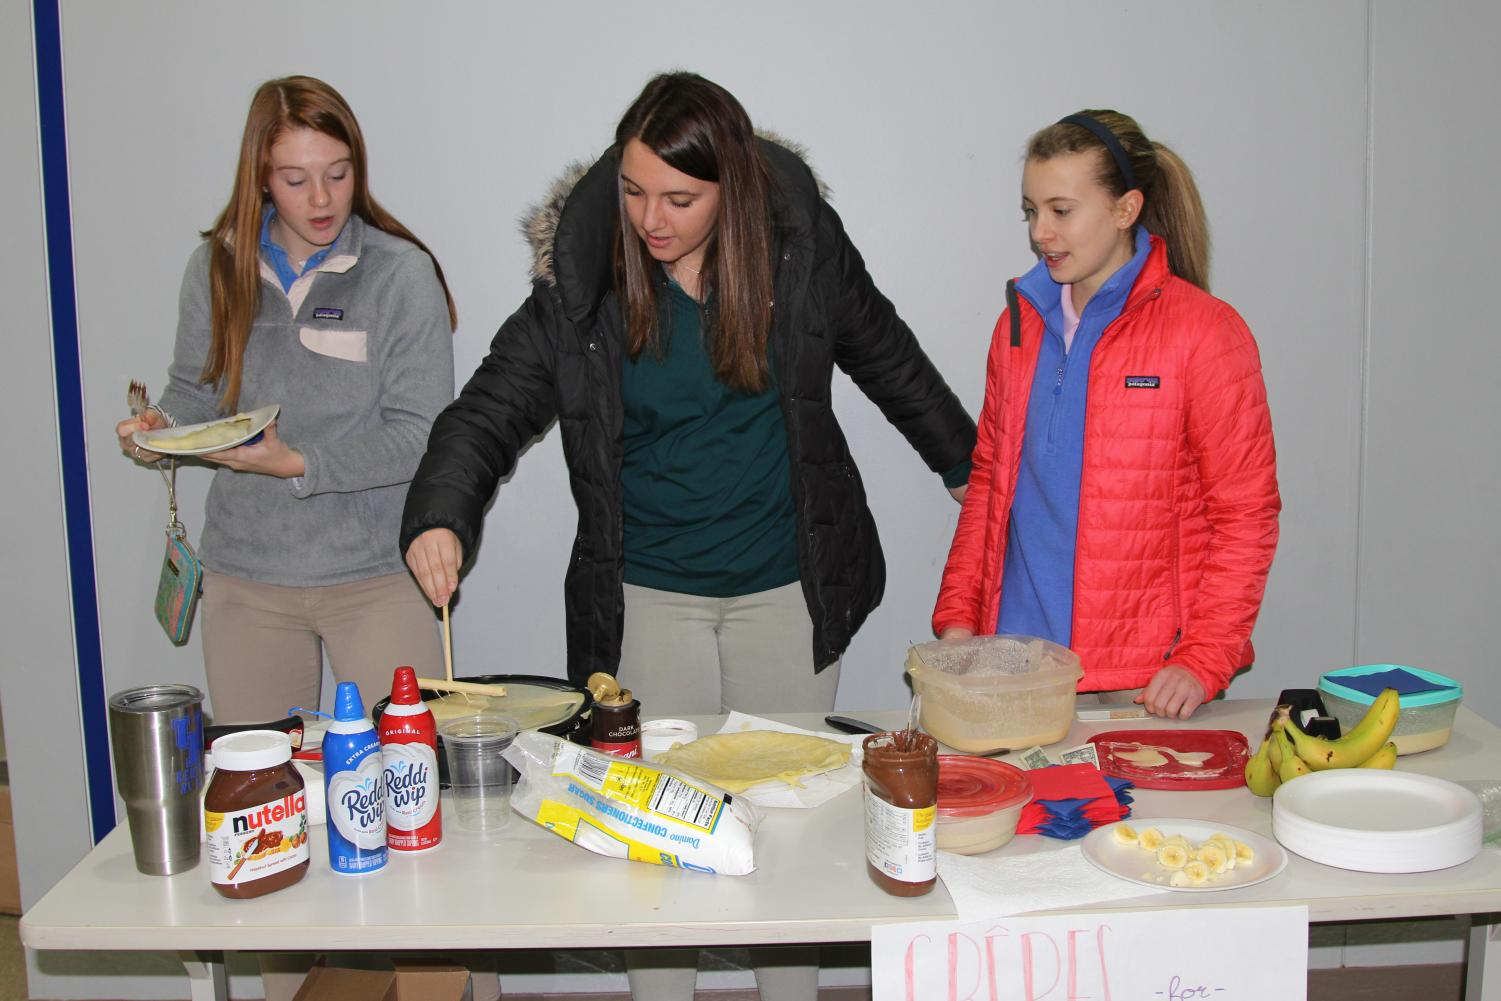 The French club makes crepes before school.  Ellie McCallum, 10, Hadley Whipple, 10, and Emily Howell, 11.